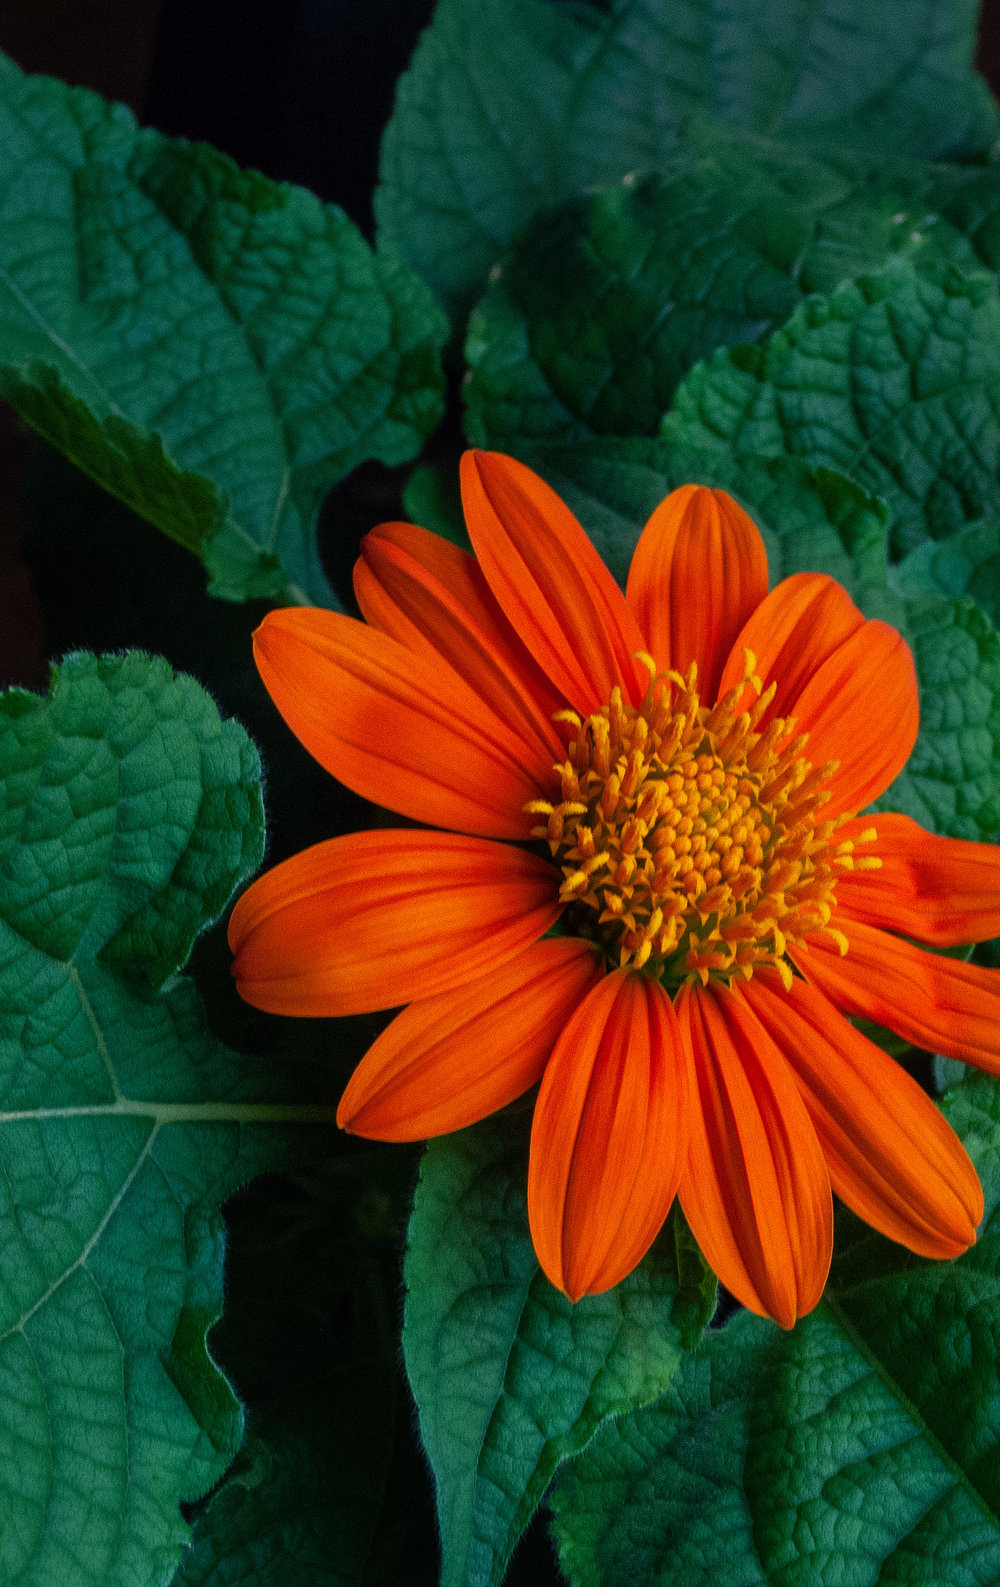 Tithonia (Mexican Sunflower)